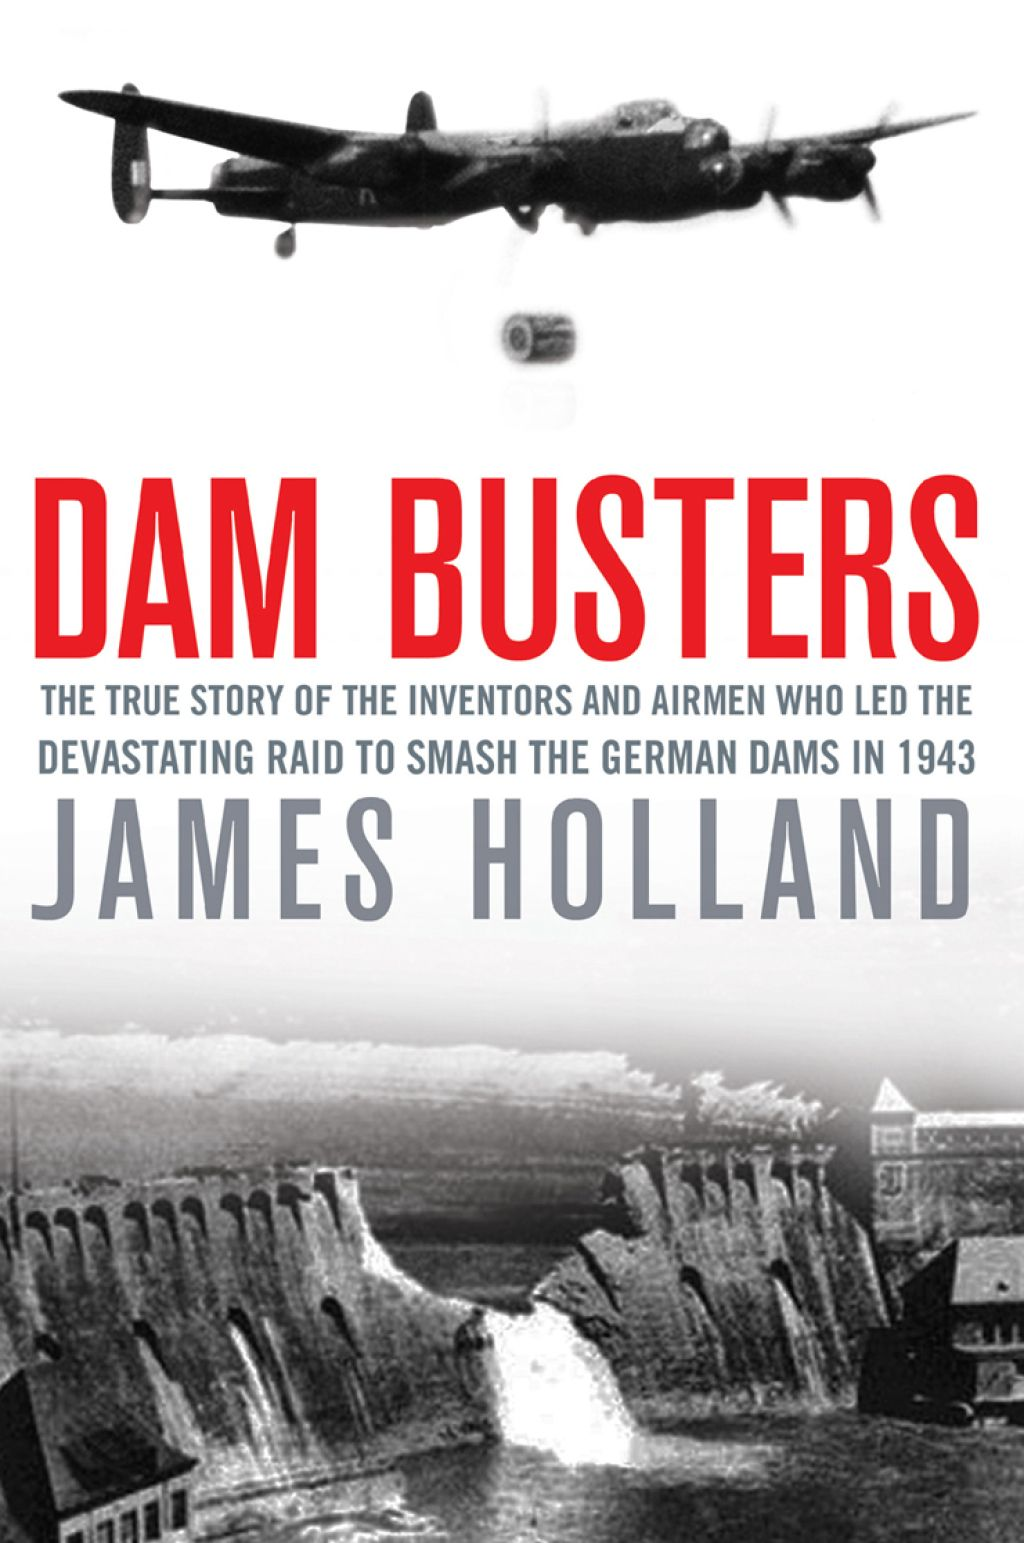 The Dam Busters (Paul Brickhill - 1965) (ID:61178)